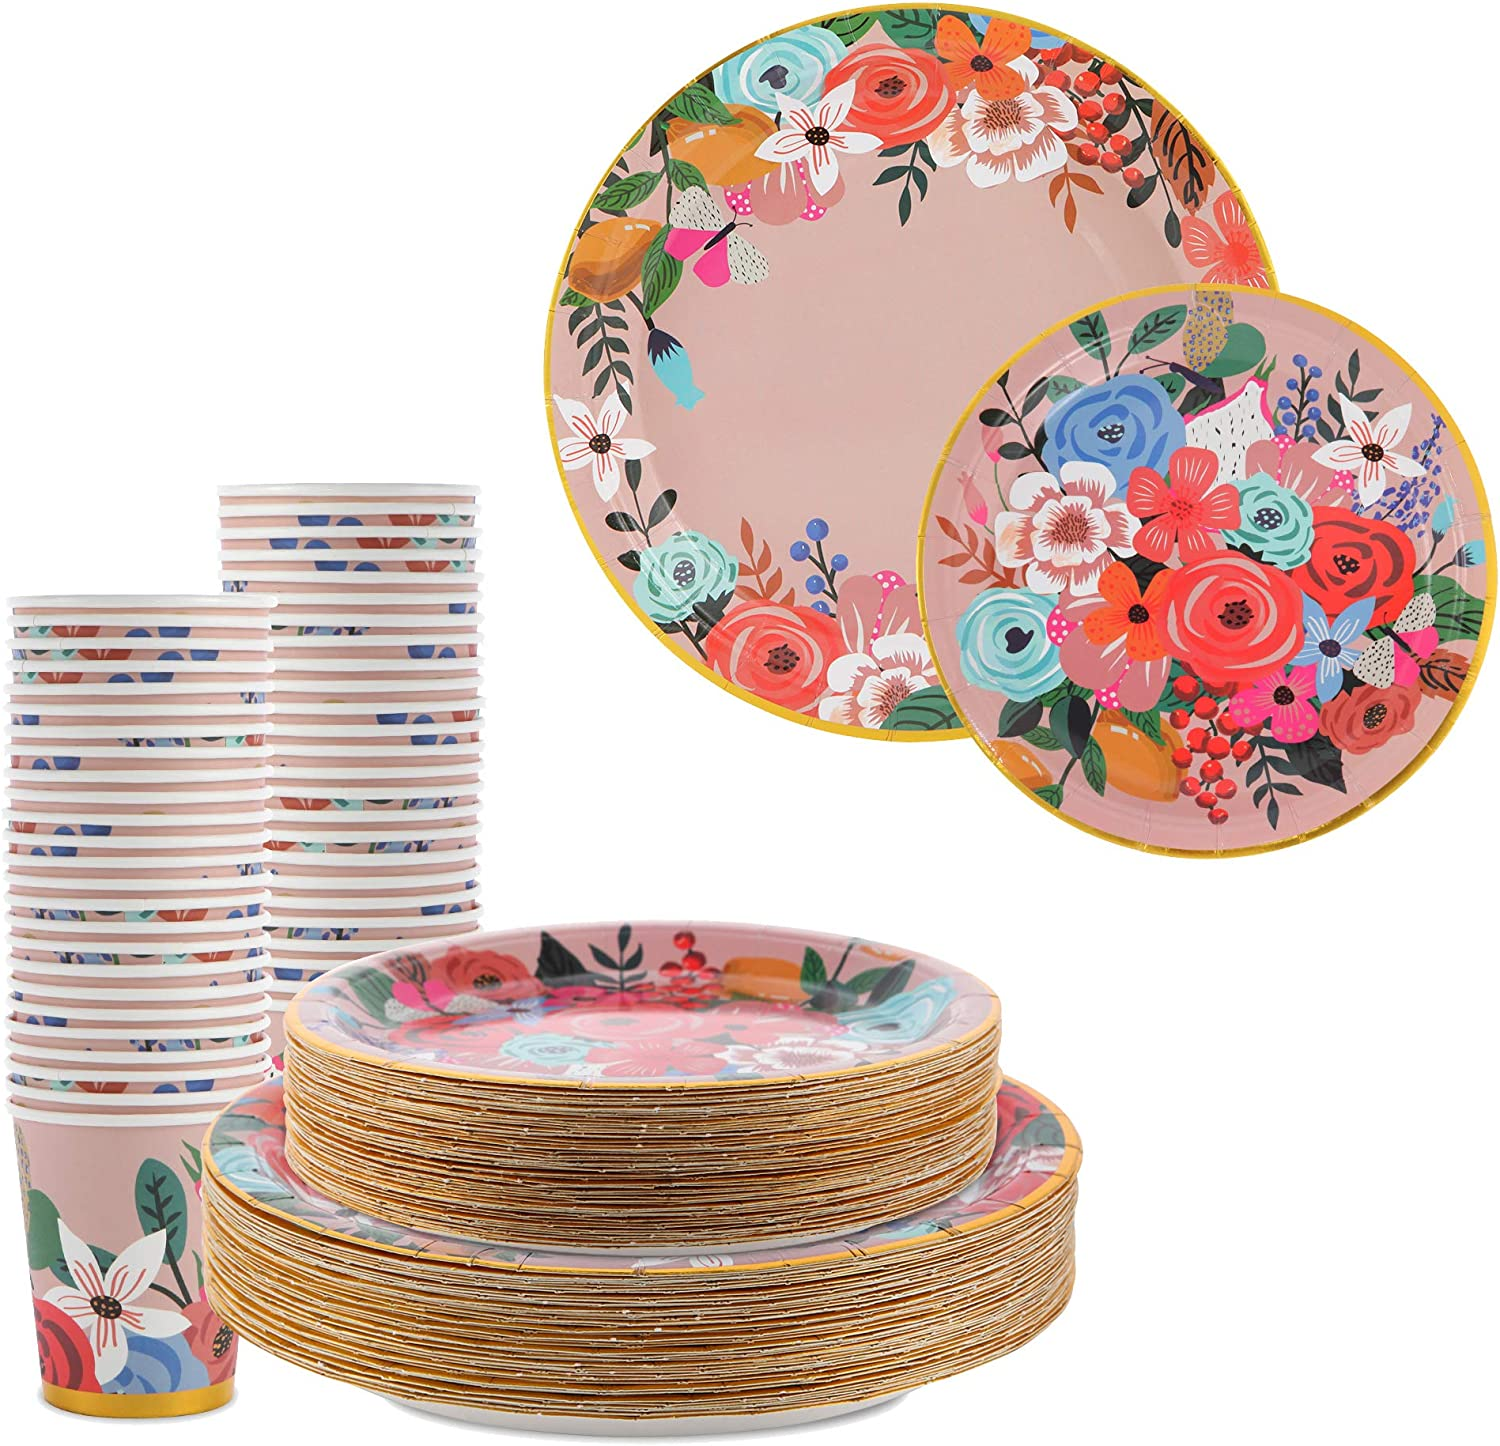 150 Pieces Disposable Paper Plates and Cups Set, Monet Garden Inspired Pink Floral with Gold Foil Design, Wedding and Party Supplies Set. Includes 50 Dinner Plates, 50 Dessert Plates, and 50 Cup